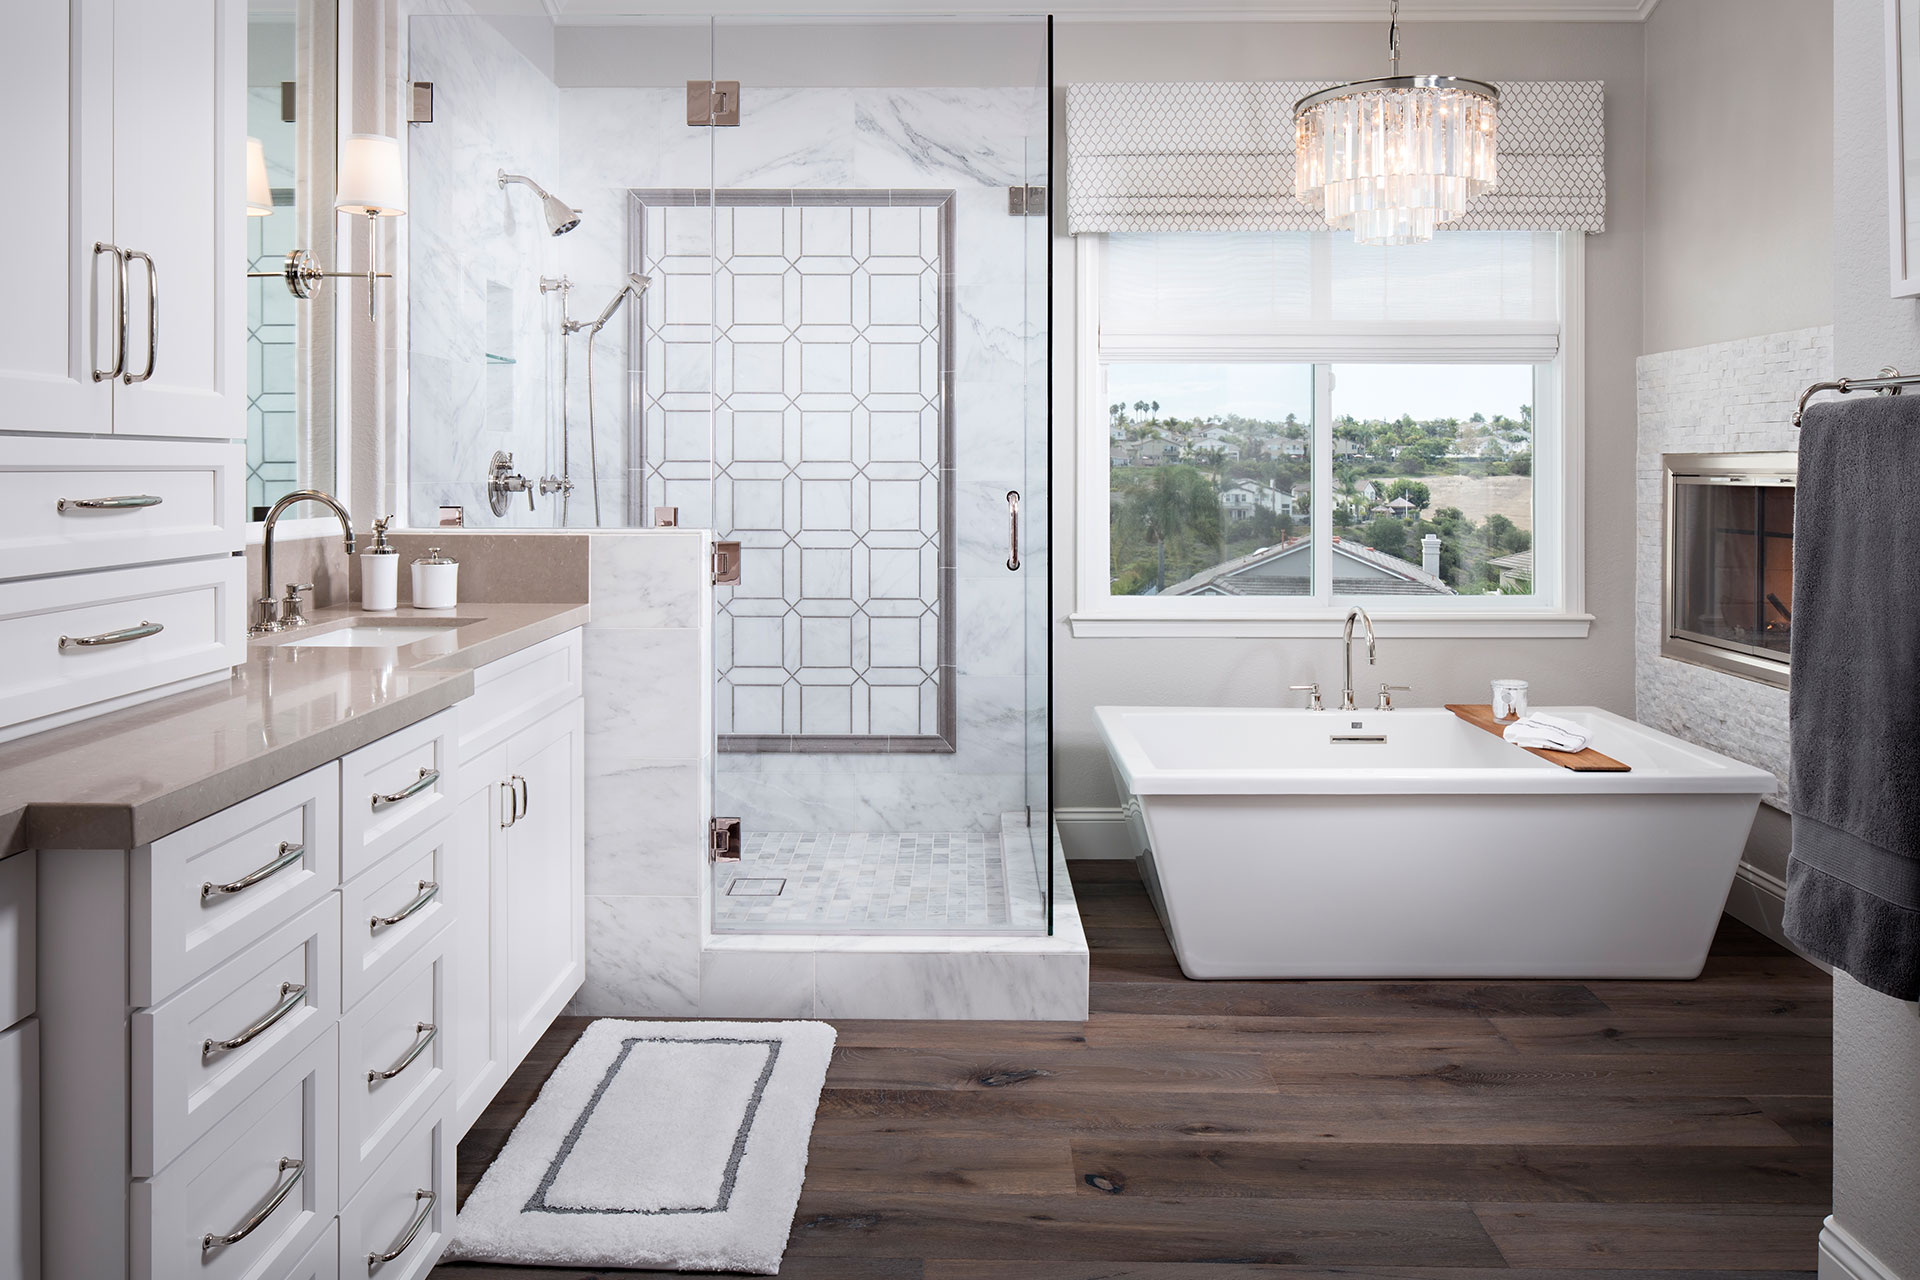 tracy lynn studio interior design in san diego - Bathroom Design San Diego